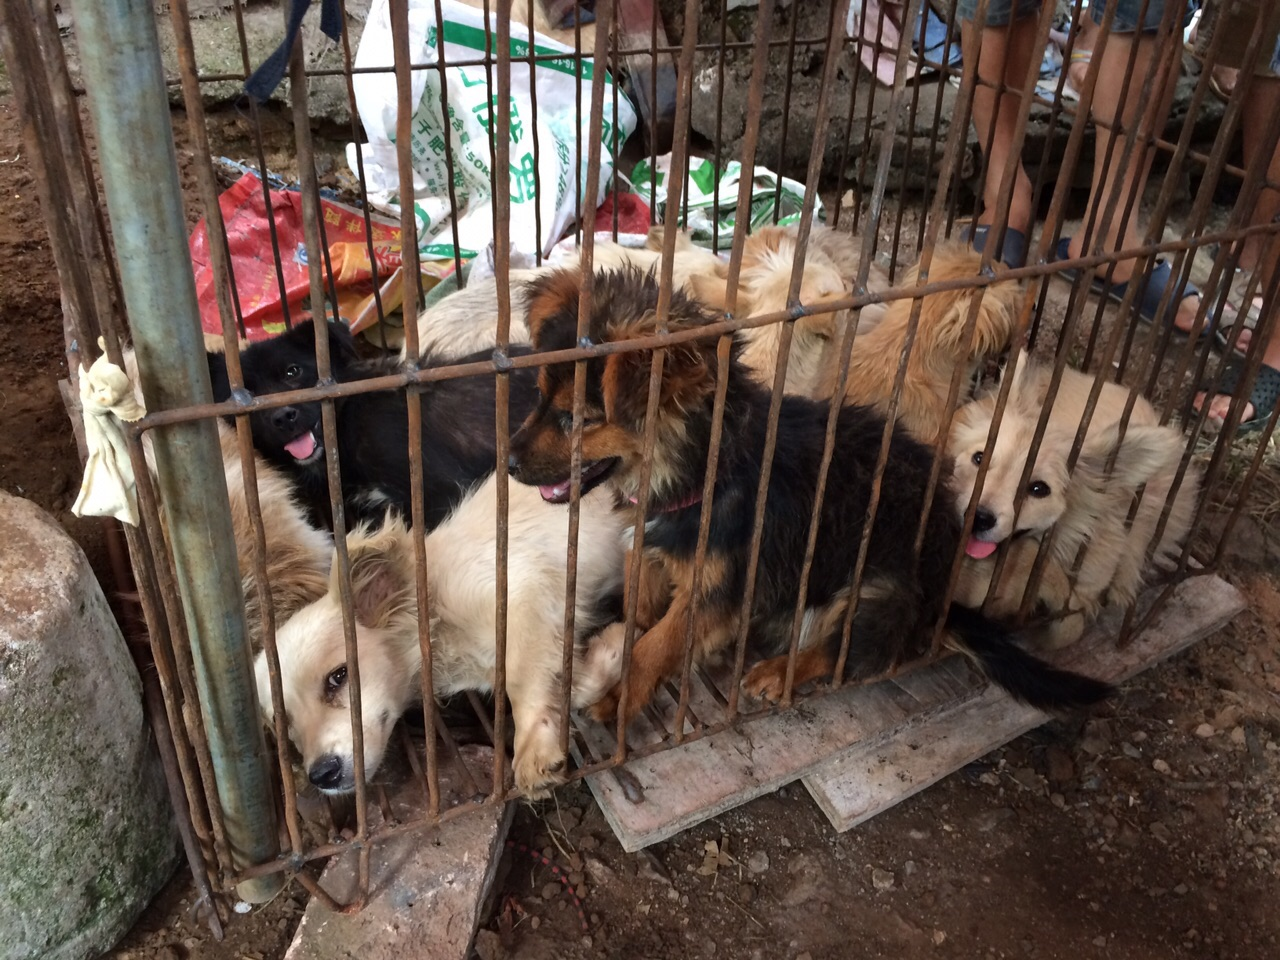 Dogs in cages waiting to be sold at Yulin festival